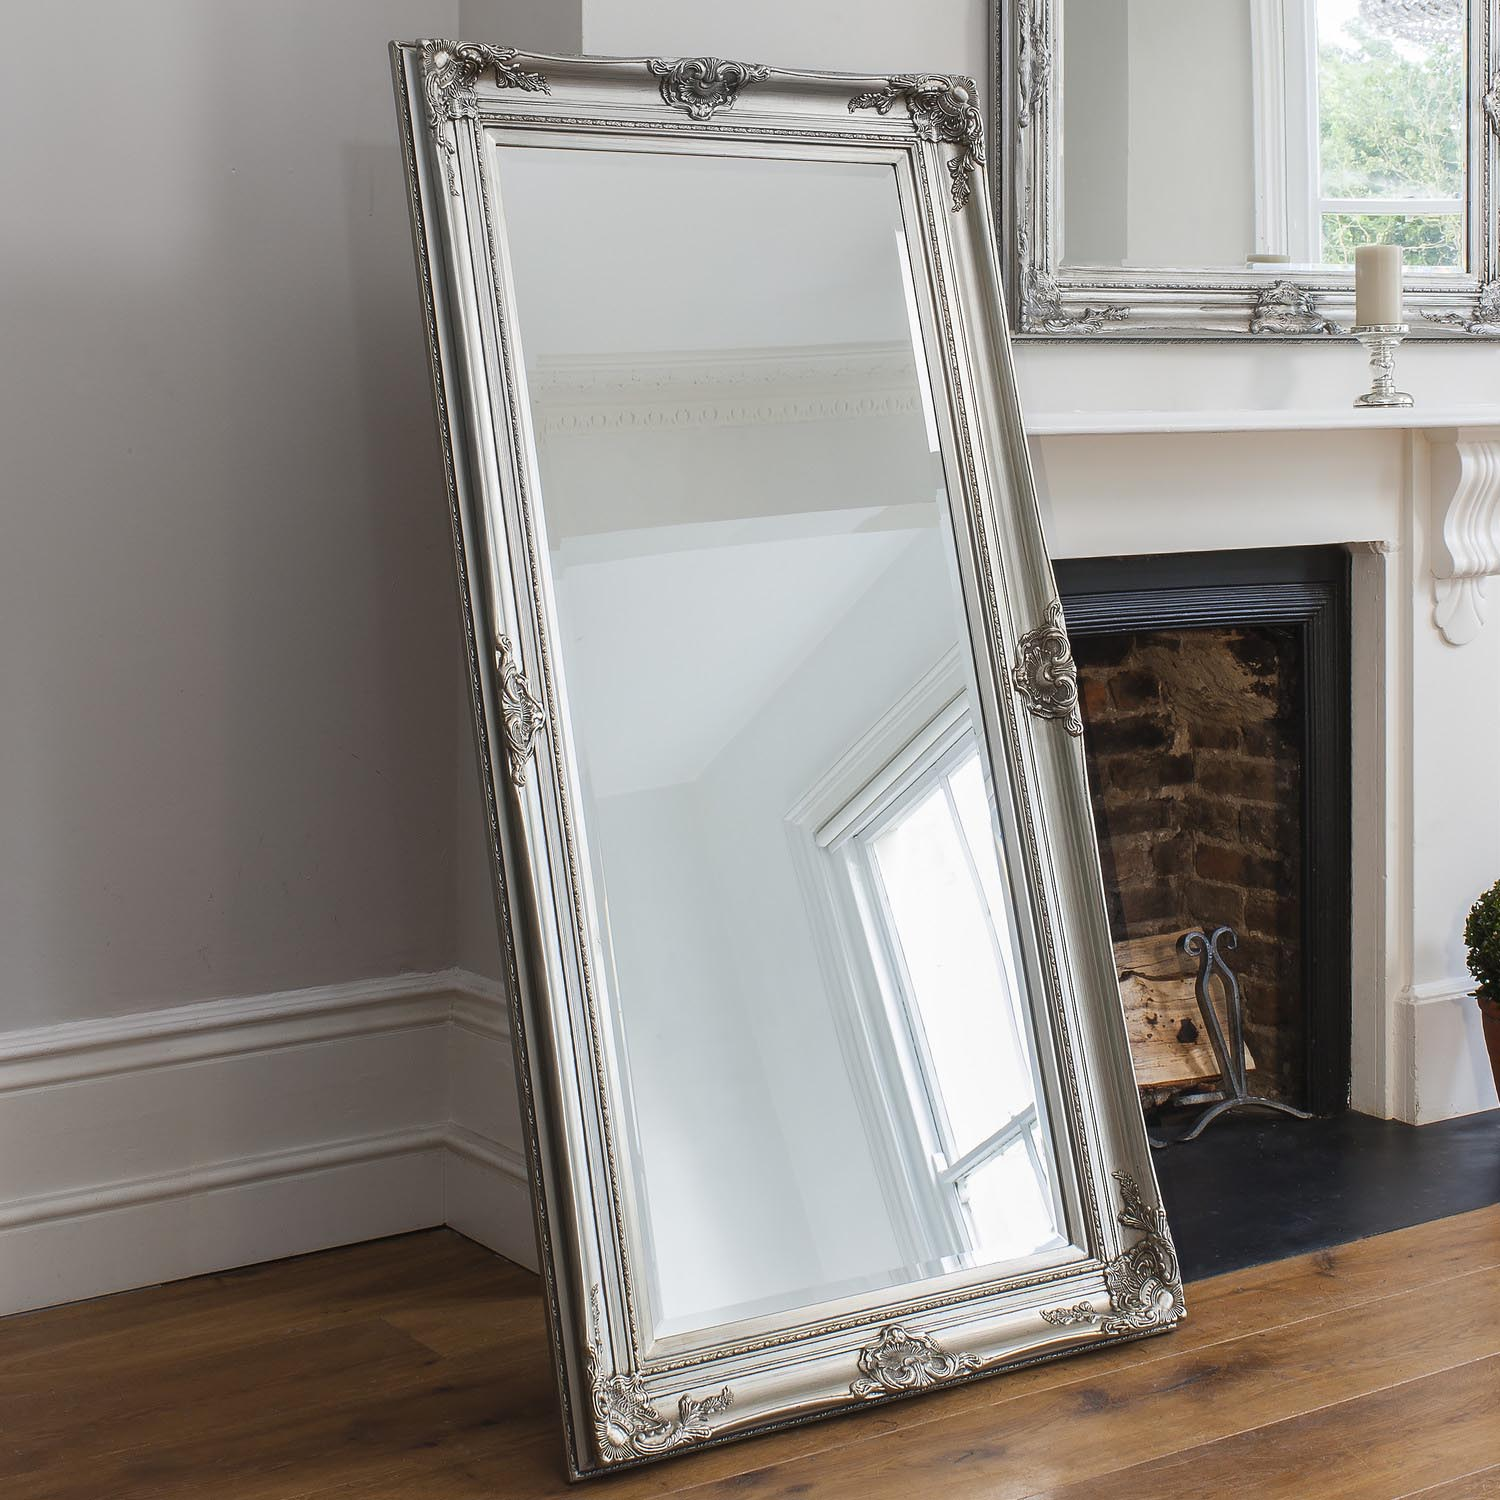 Large Mirror Large Floor Standing Mirrors Cheap Best Decor Things